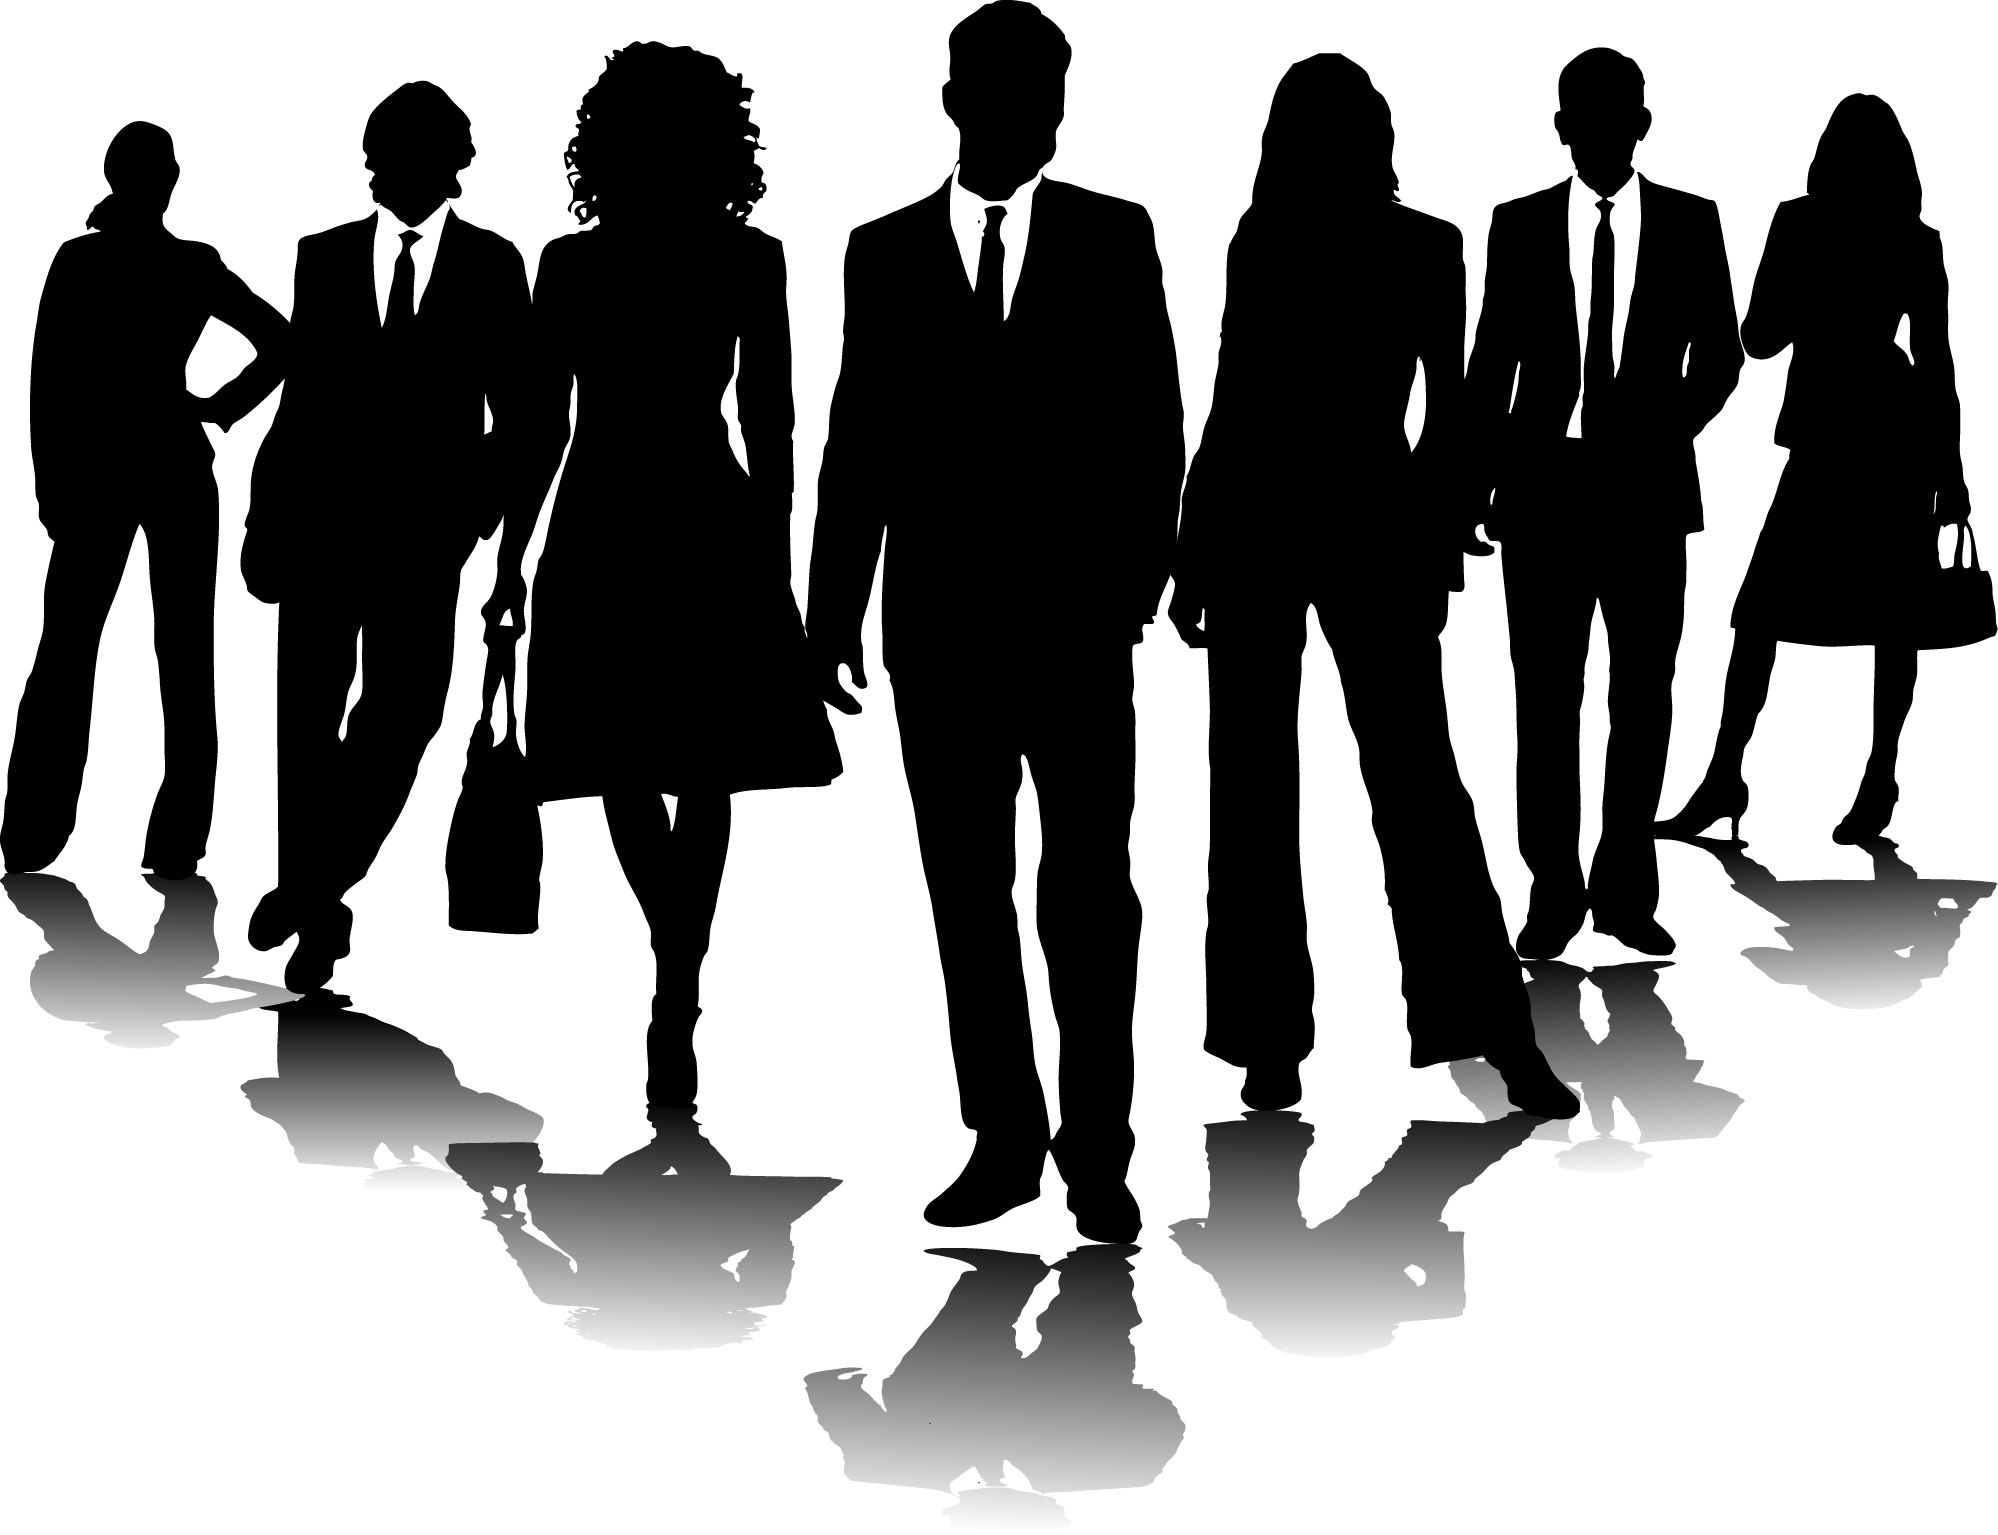 Business clipart. People